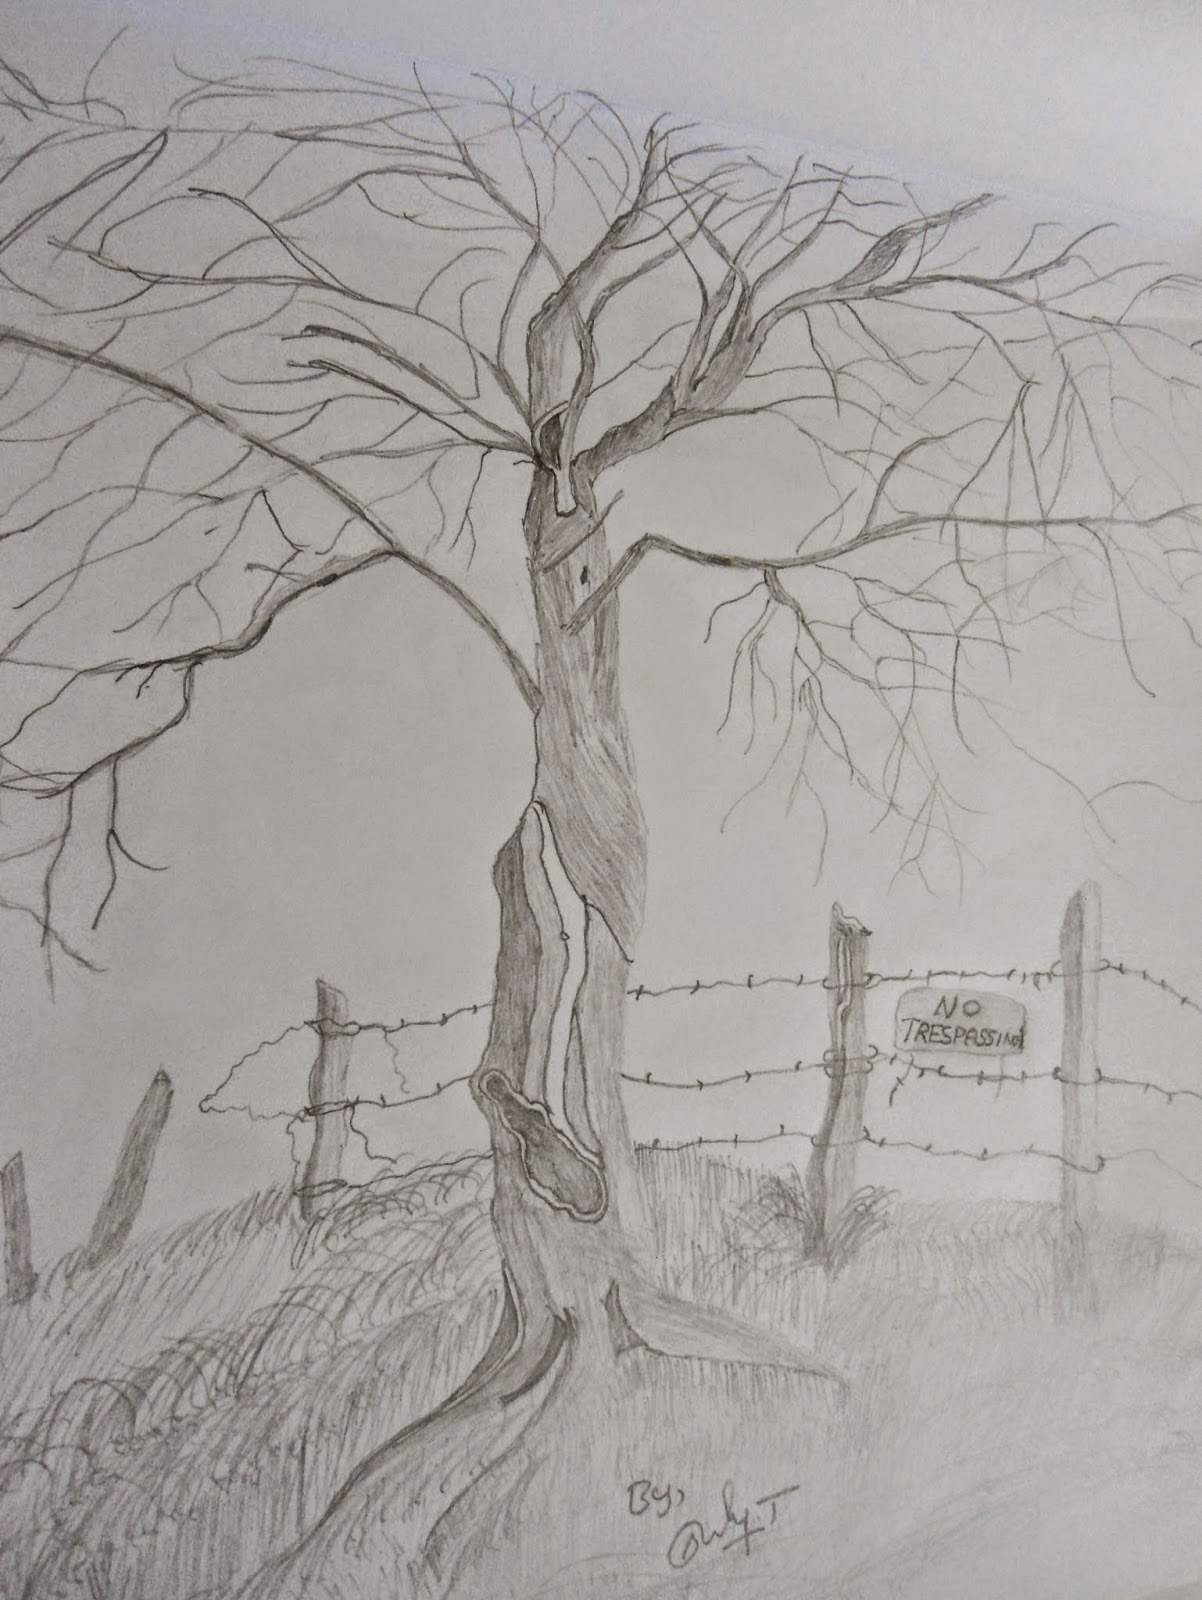 Beautiful pencil drawings pencil sketches of nature landscapes gods birds animals and more